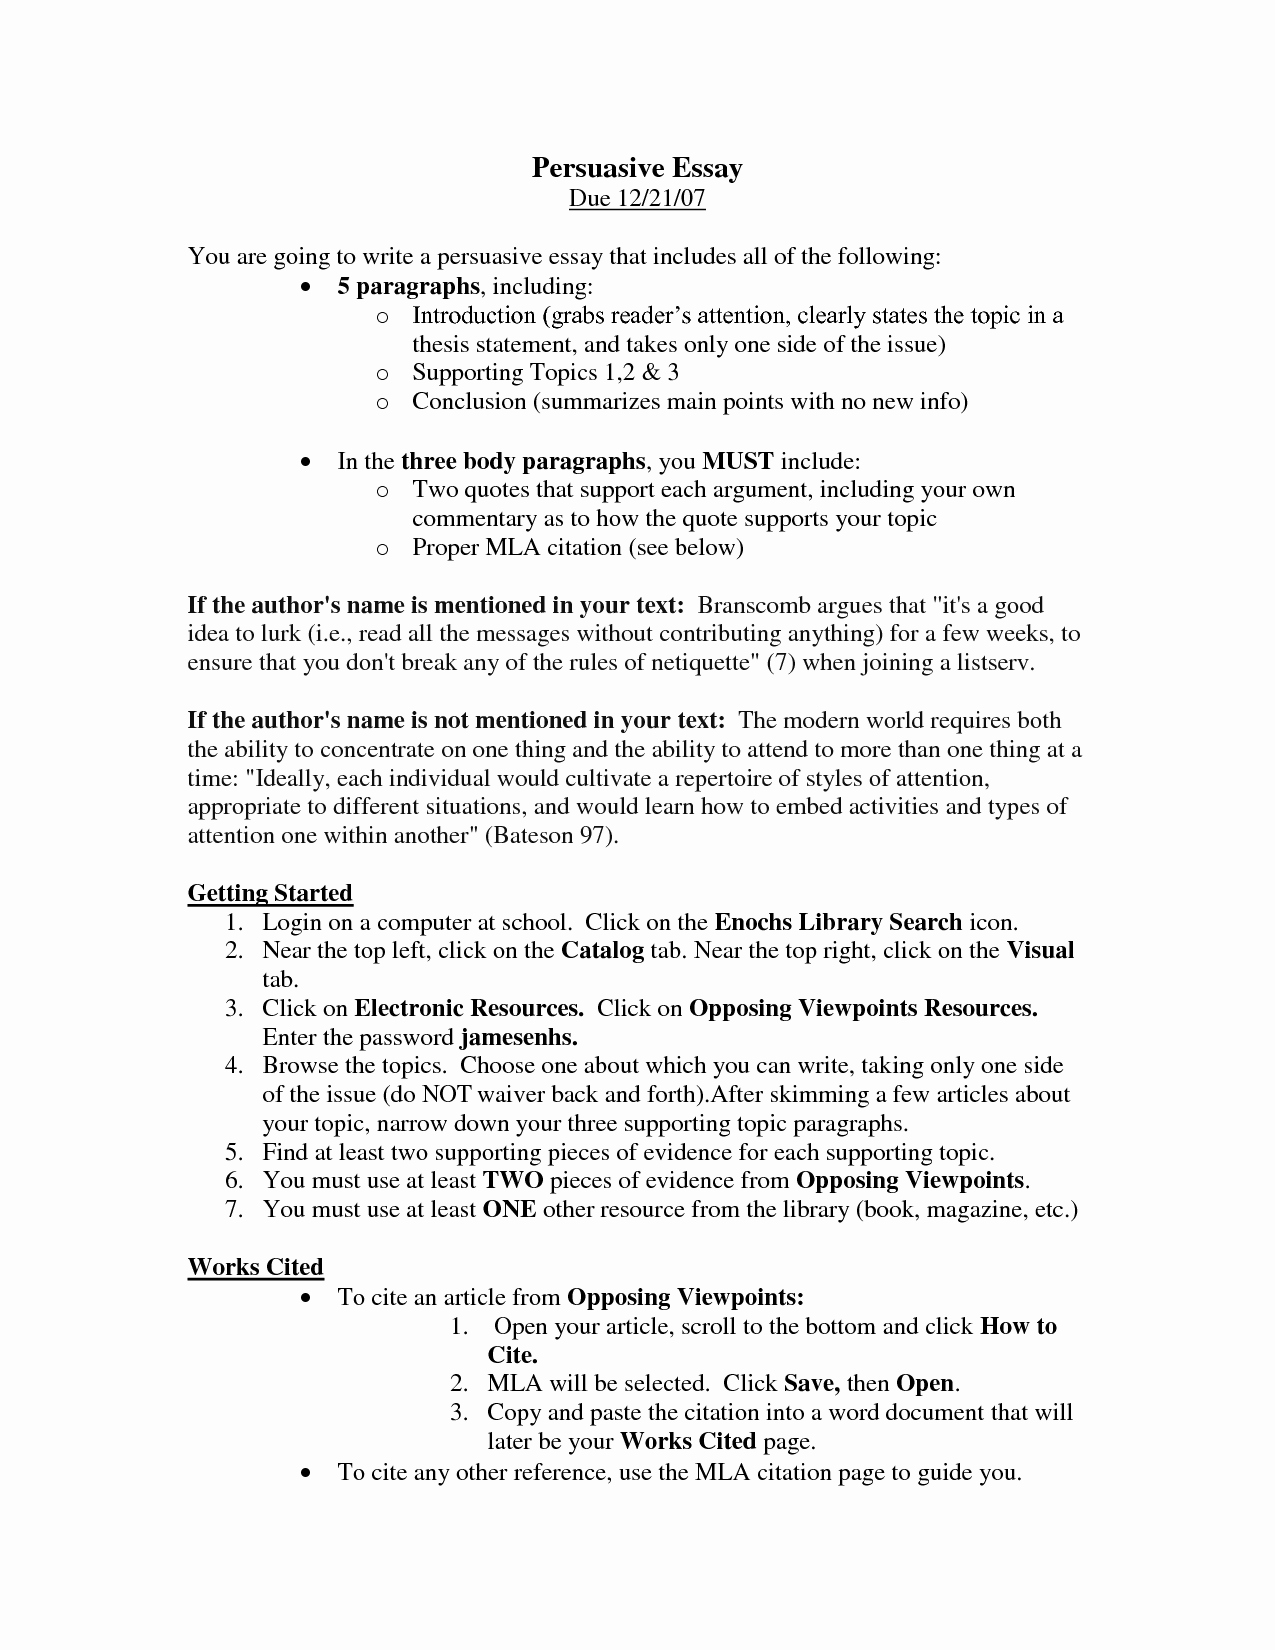 Mla format Outline for Speech Beautiful Best S Of Persuasive Speech Outline form Persuasive